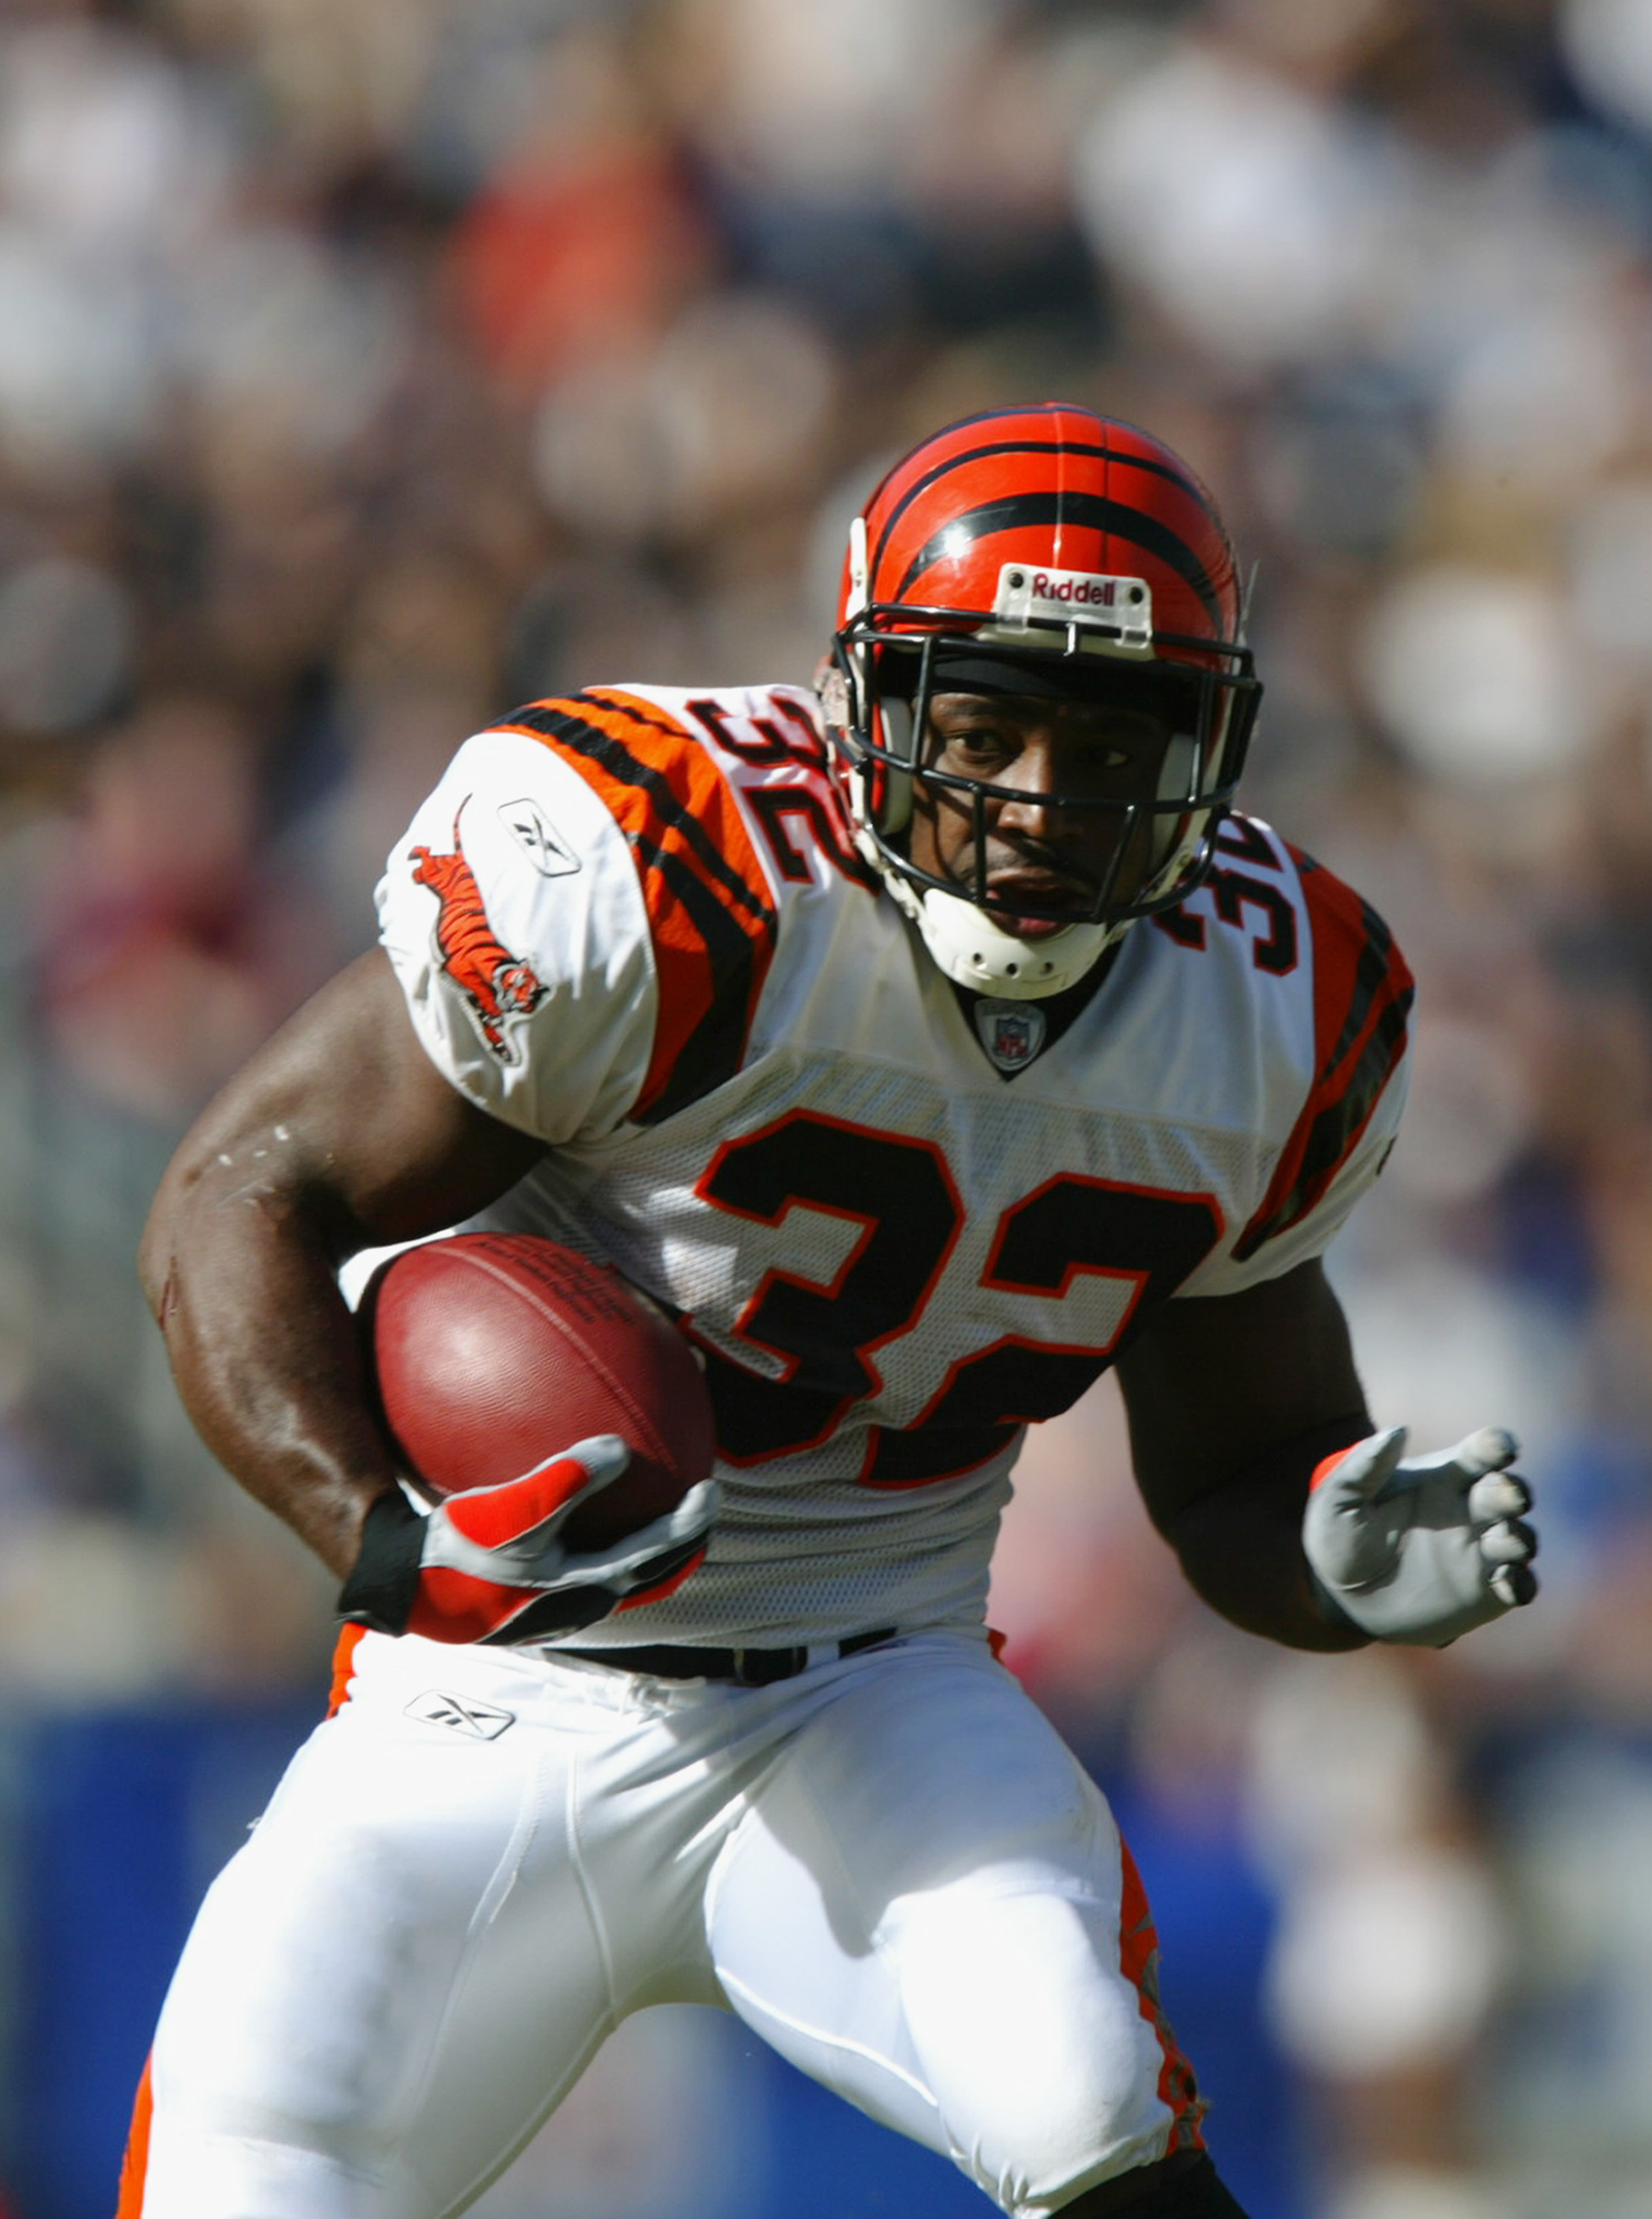 SAN DIEGO - NOVEMBER 23:  Running back Rudi Johnson #32 of the Cincinnati Bengals runs the ball against the San Diego Chargers on November 23, 2003 at Qualcomm Stadium in San Diego, California.  The Bengals defeated the Chargers 34-27. (Photo by Donald Mi